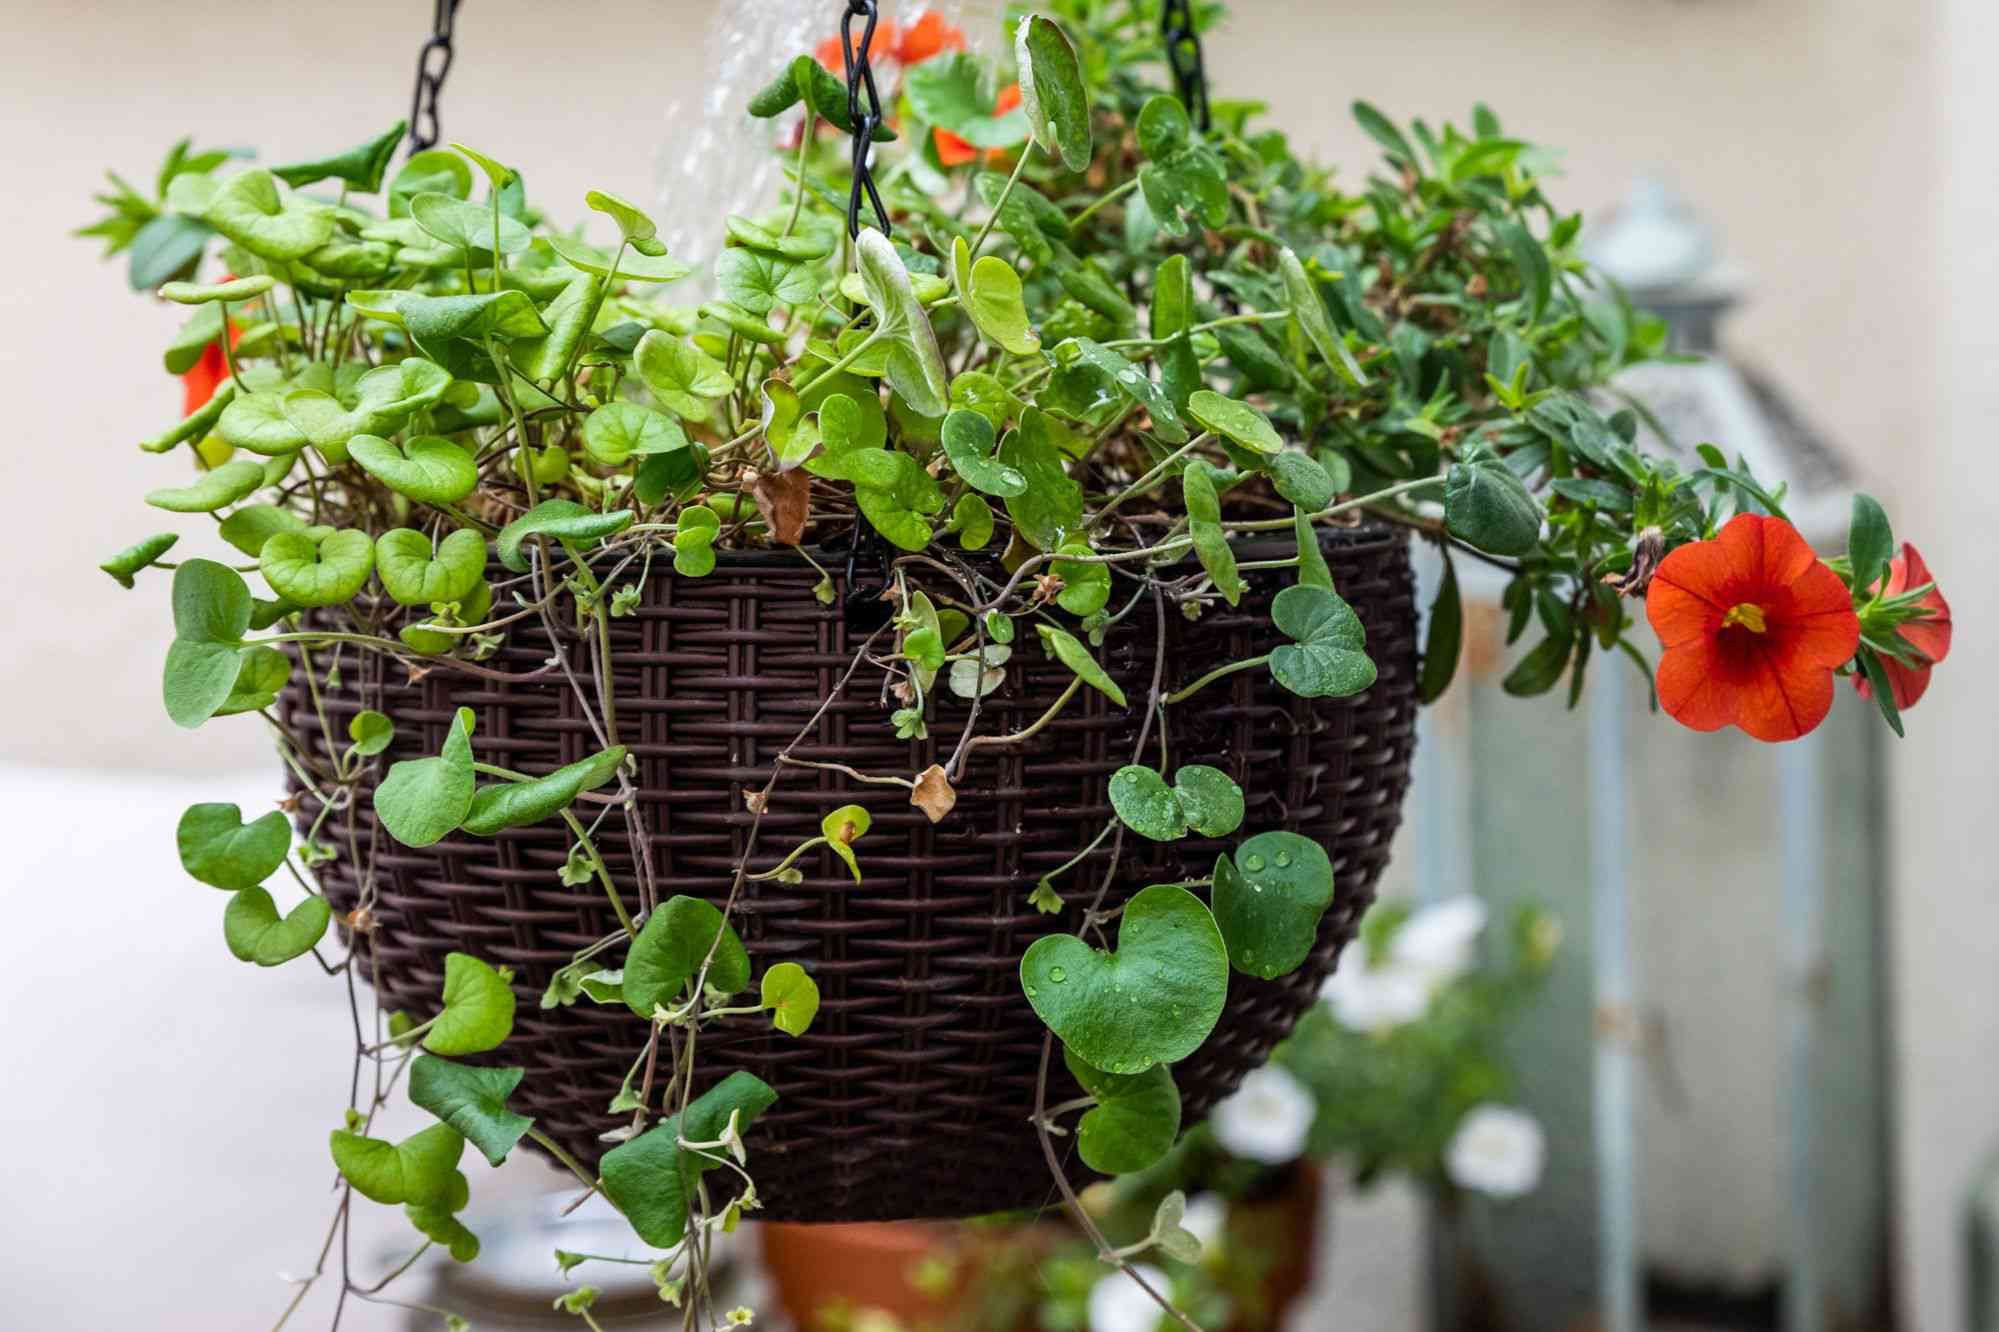 Dichondra plant in brown hanging basket with red flower stems and leaves hanging over